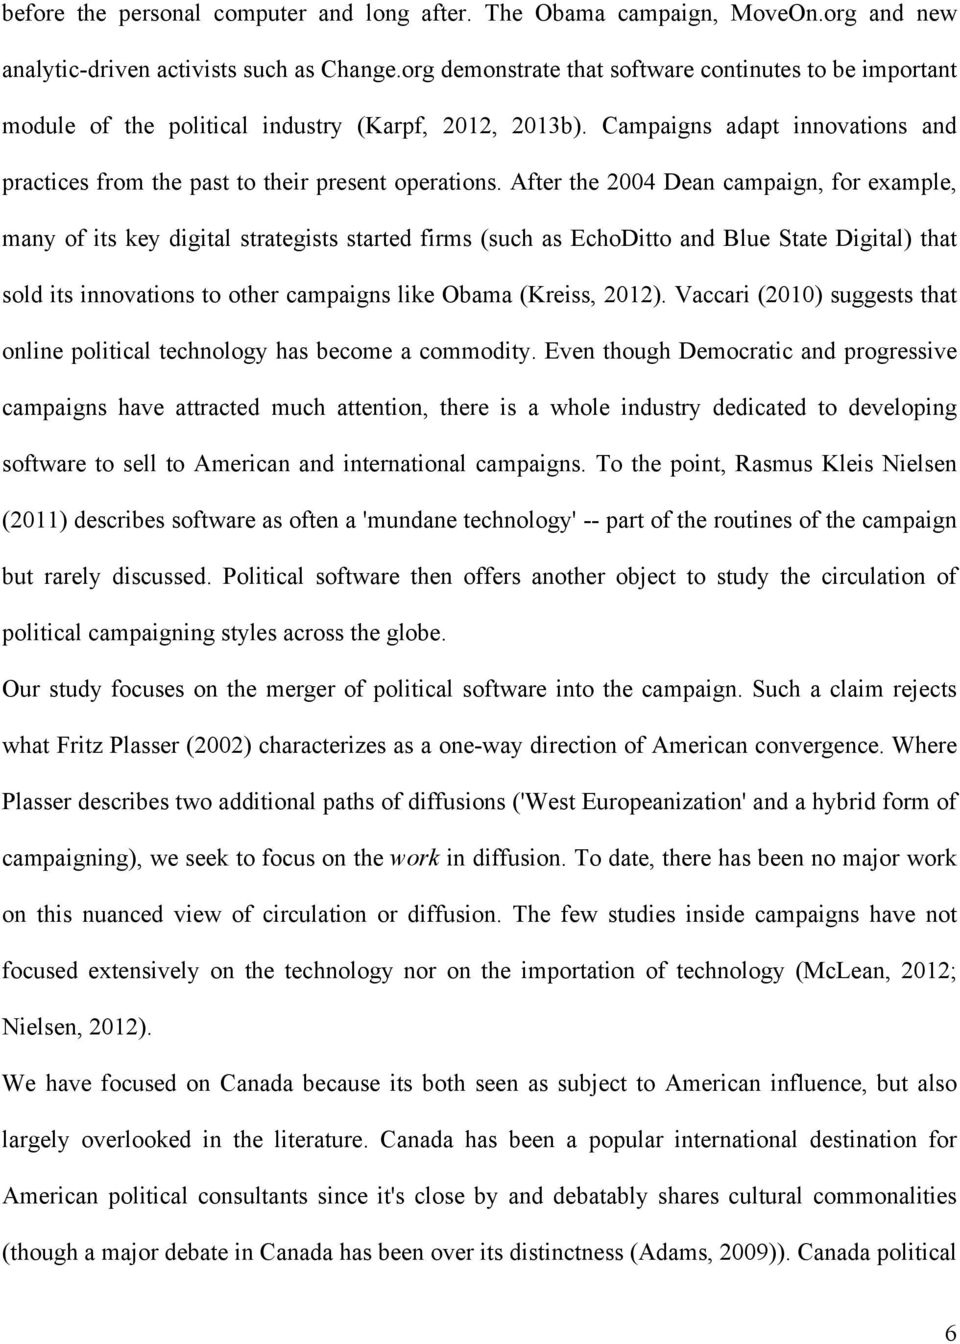 After the 2004 Dean campaign, for example, many of its key digital strategists started firms (such as EchoDitto and Blue State Digital) that sold its innovations to other campaigns like Obama